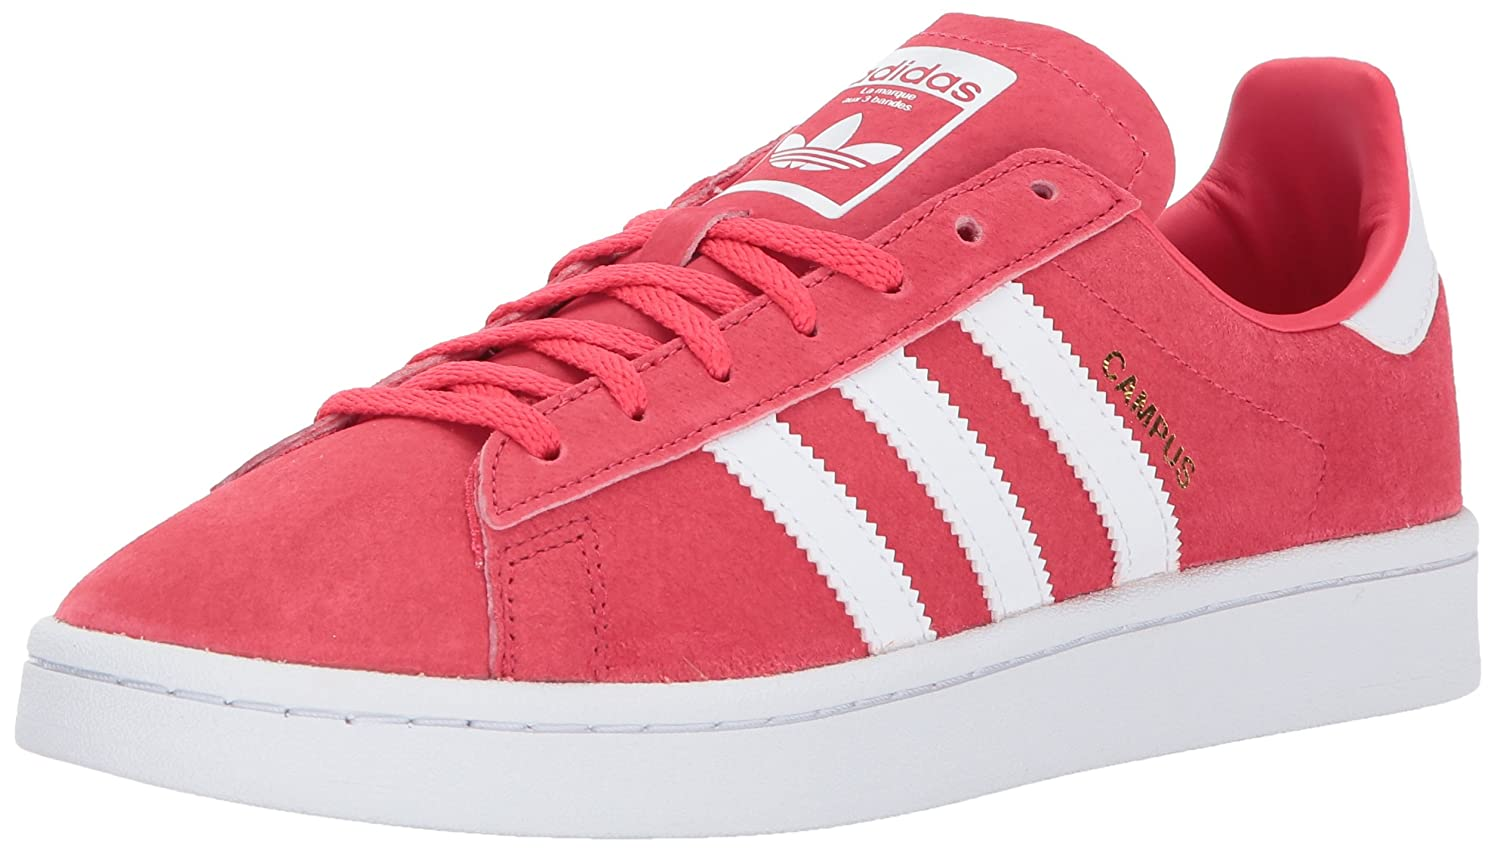 adidas Originals Women's Campus W Sneaker B01N7IAF4W 10.5 B(M) US|Core Pink/White/Crystal White